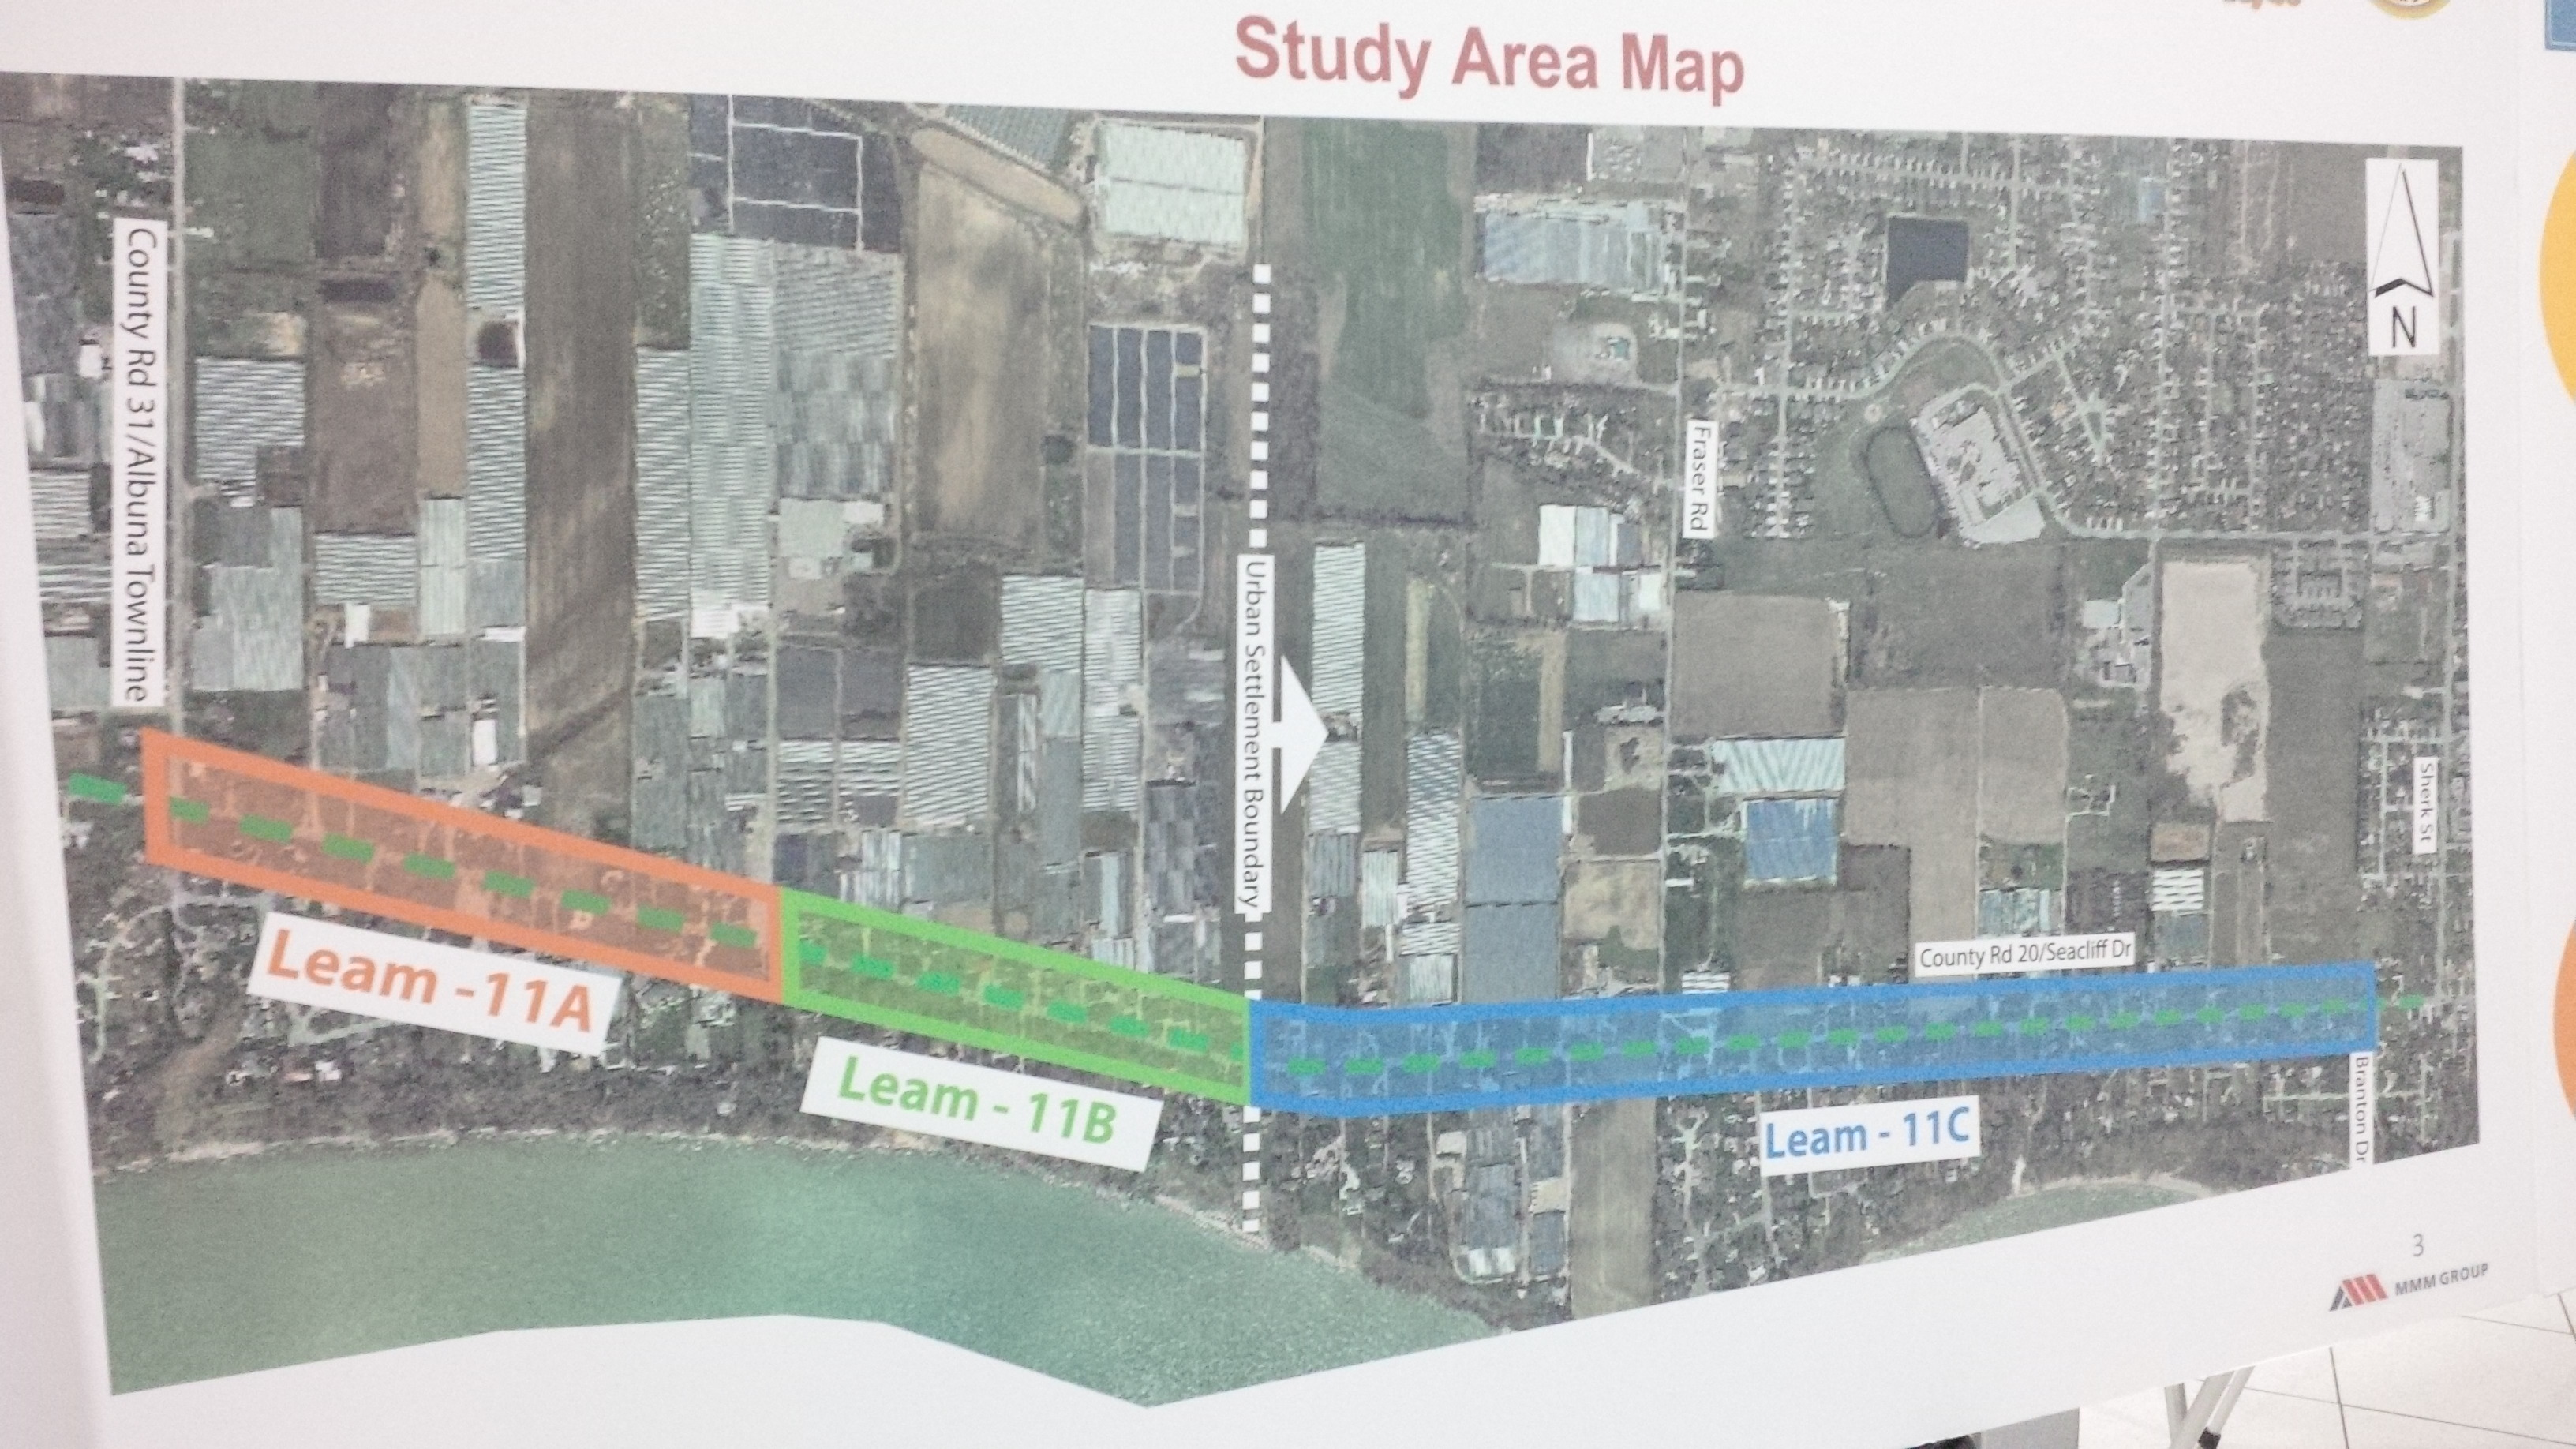 A map of the study area for a trail project along Seacliff Dr. (County Rd. 20) in Leamington being considered as part of the County Wide Acitve Transportation Study initiative. (Photo by Ricardo Veneza)